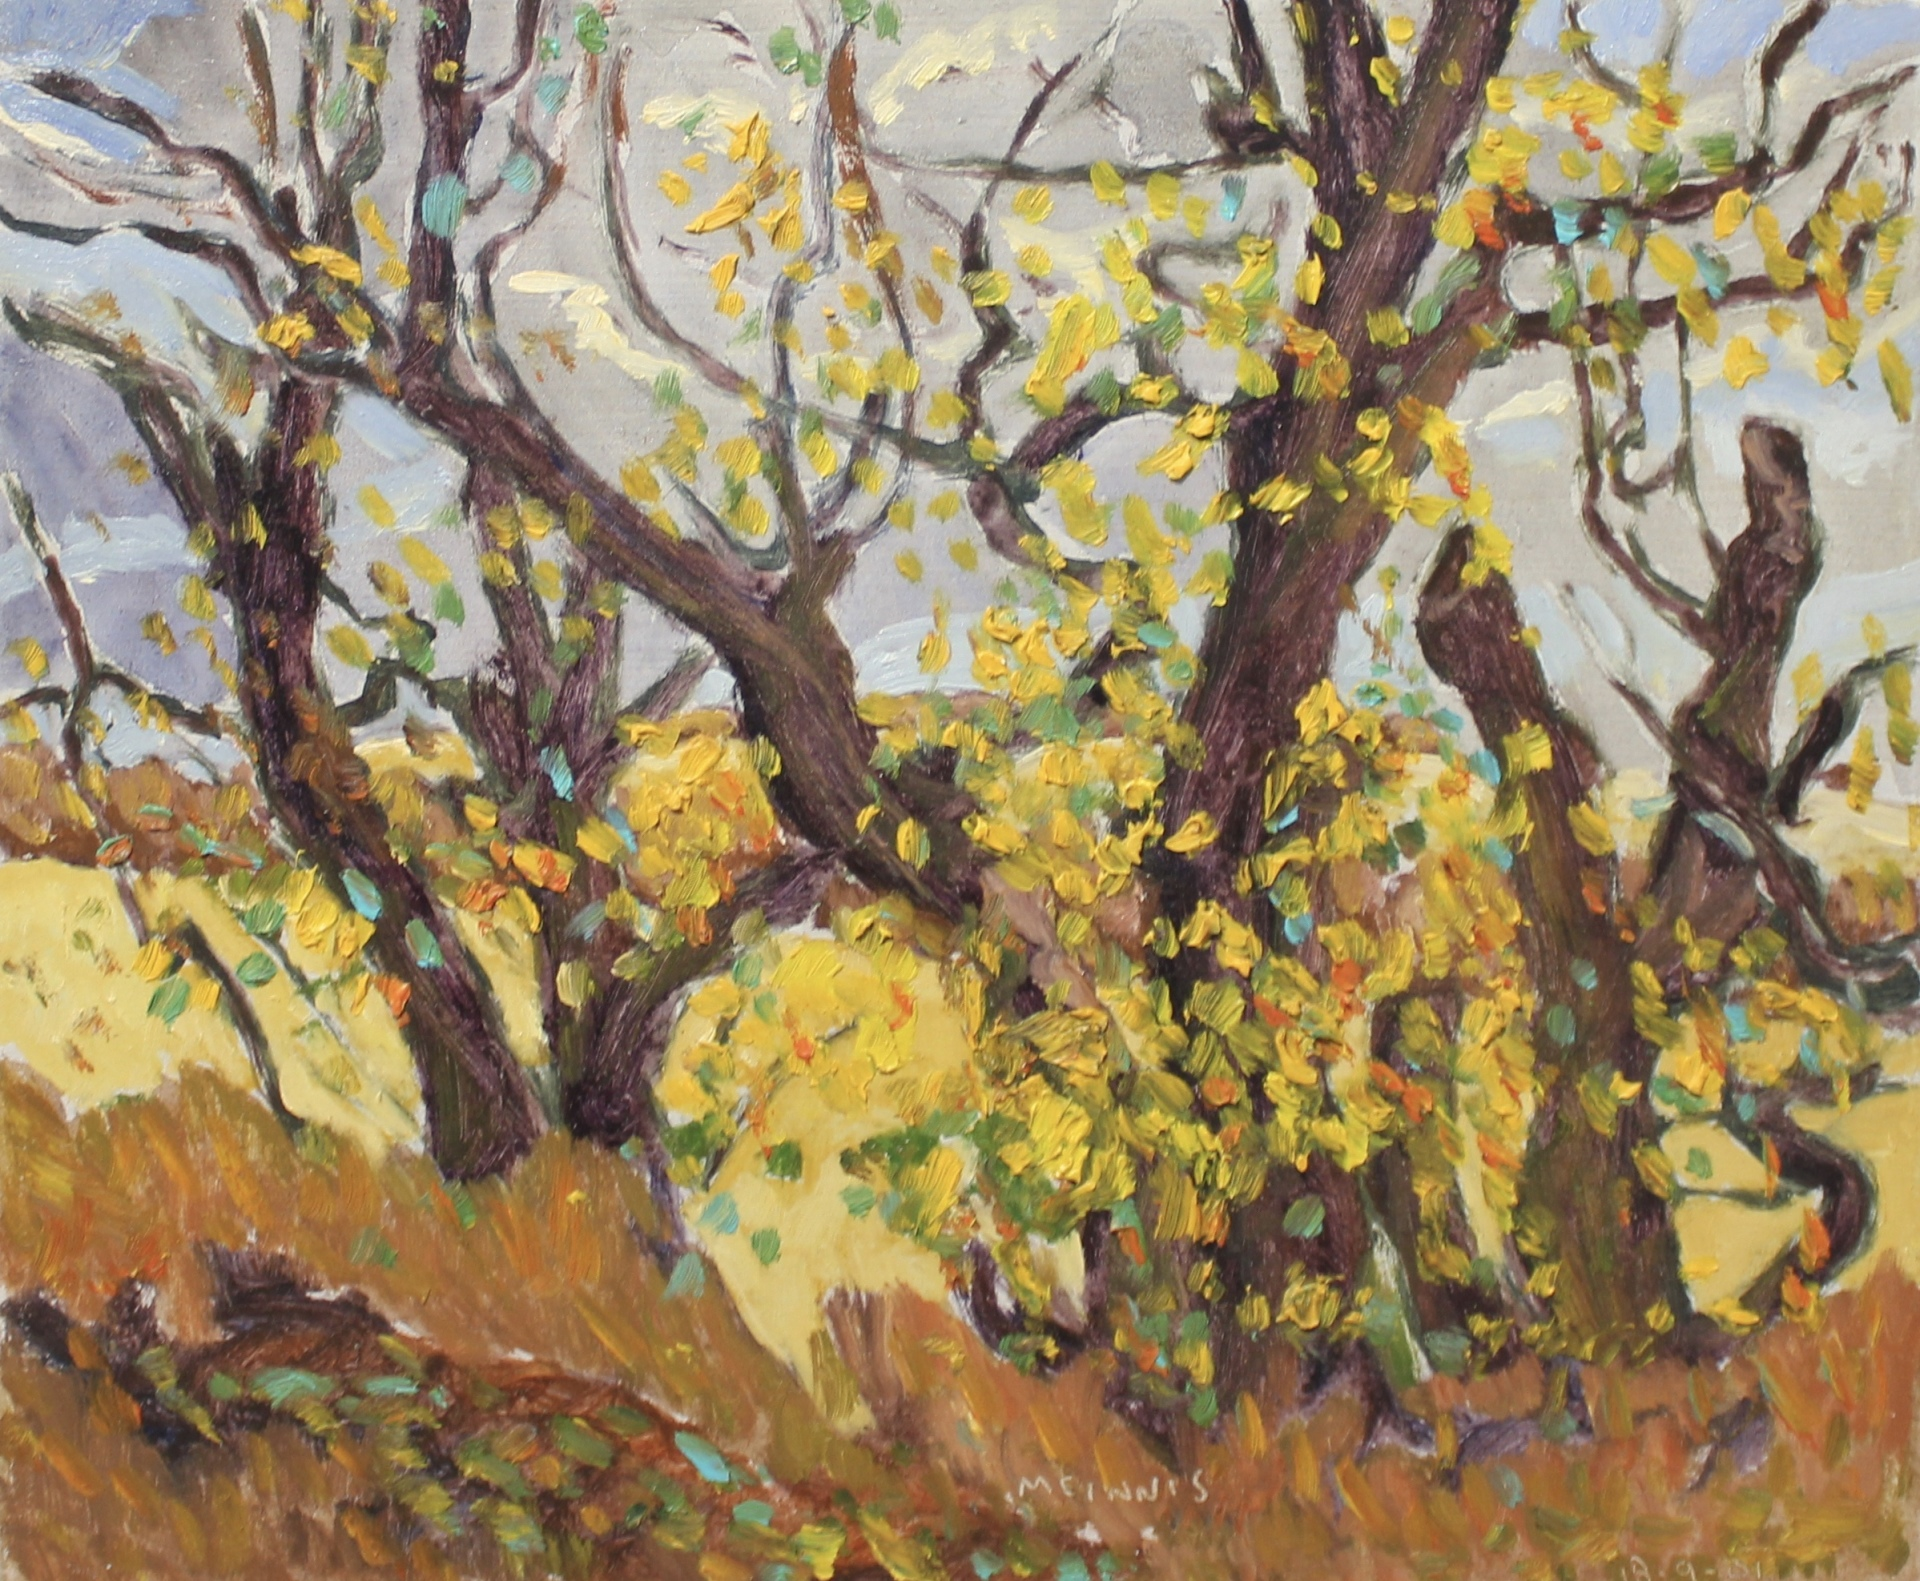 YELLOWING TREES - 10X12 - OIL ON PANEL - 2001